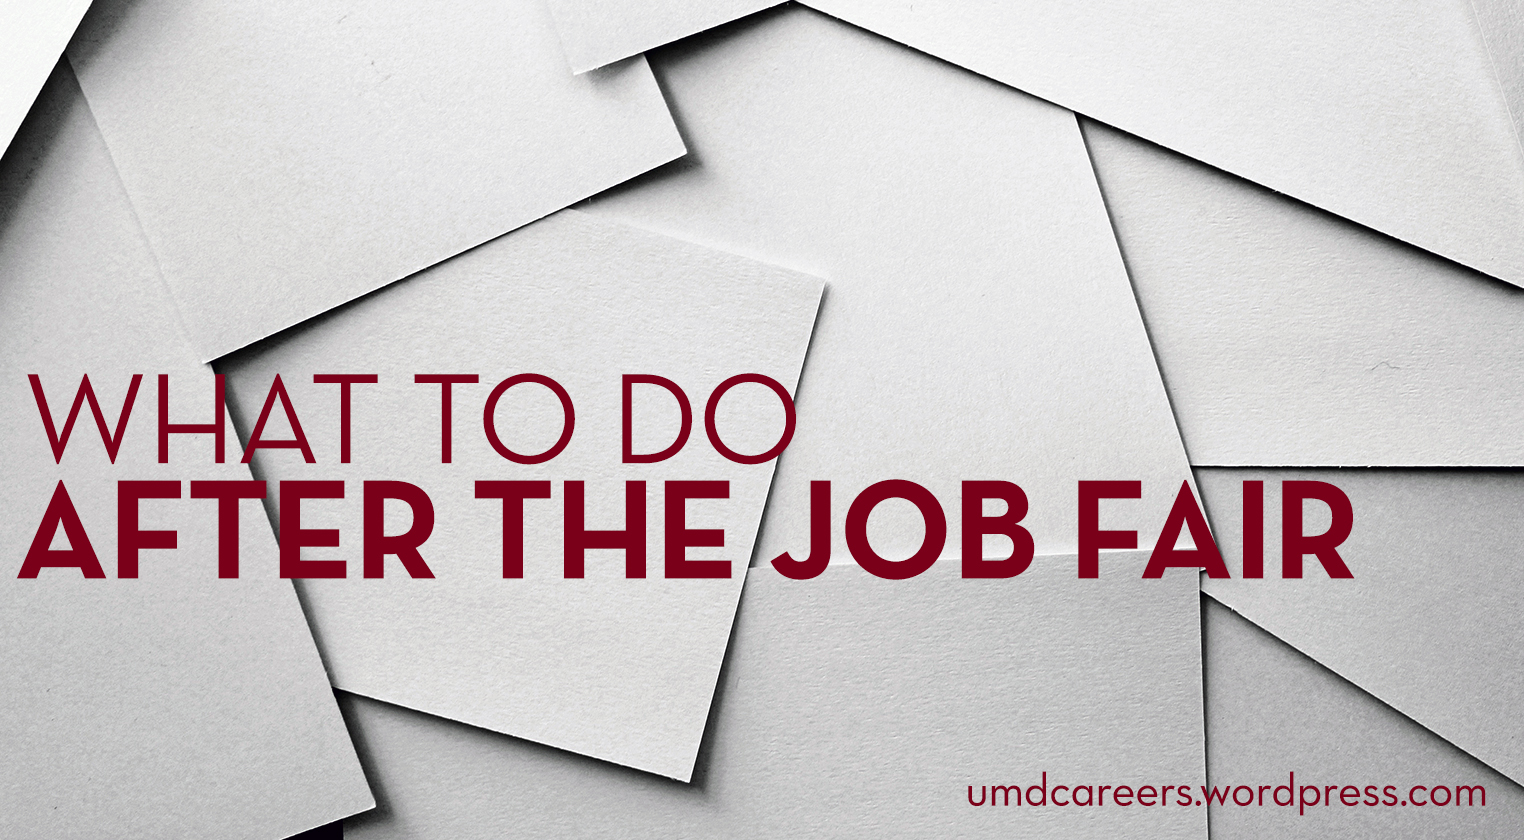 Text: What to do after the job fair